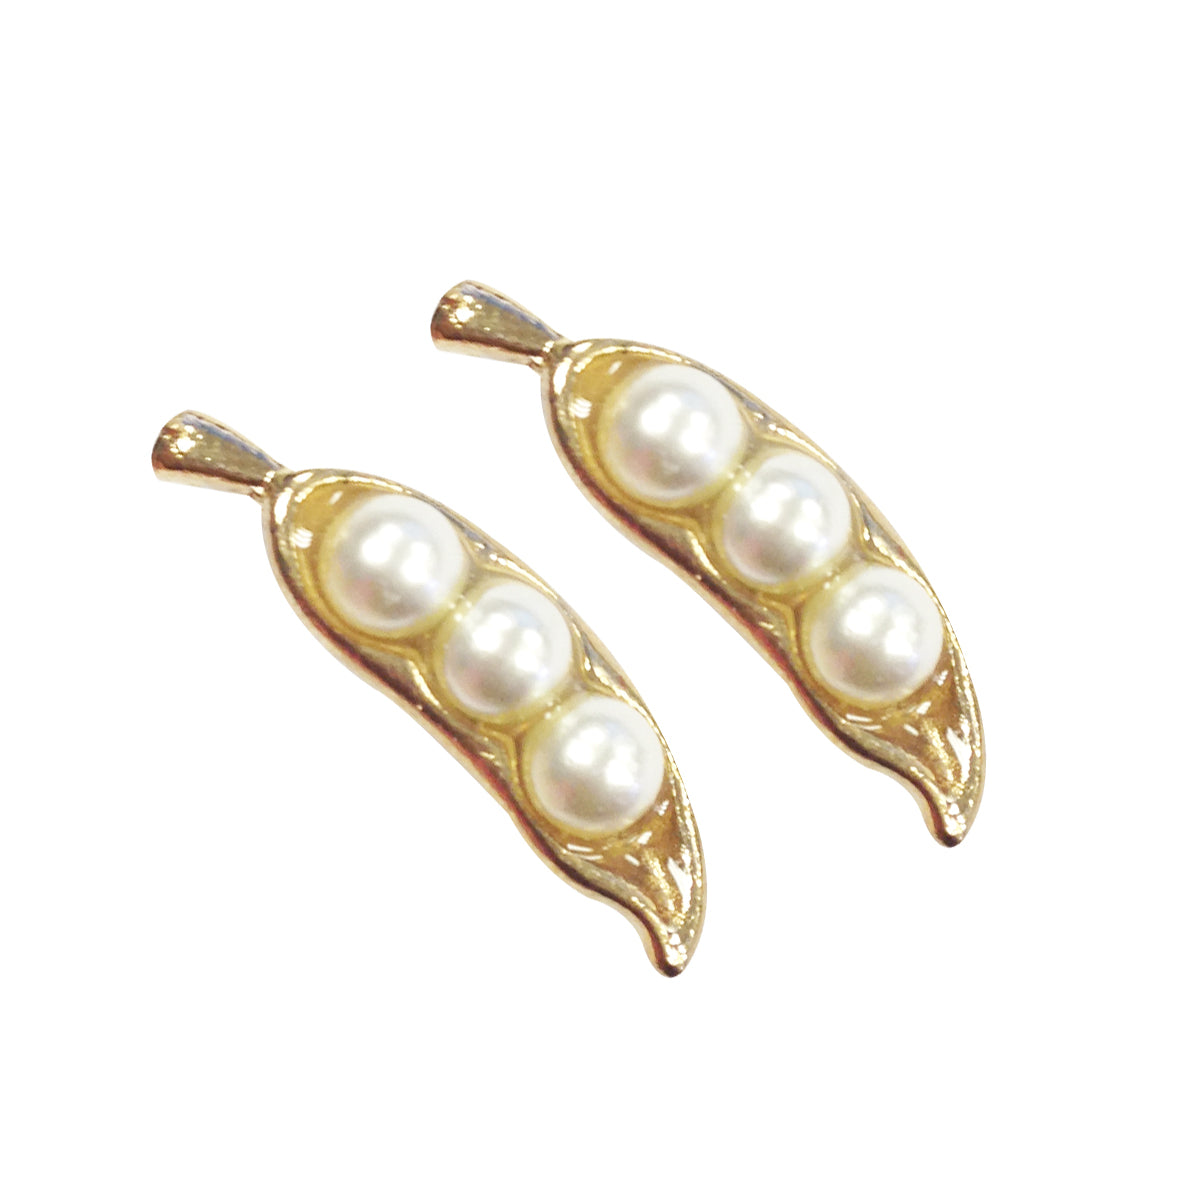 Wrapables Pea Pod Earrings